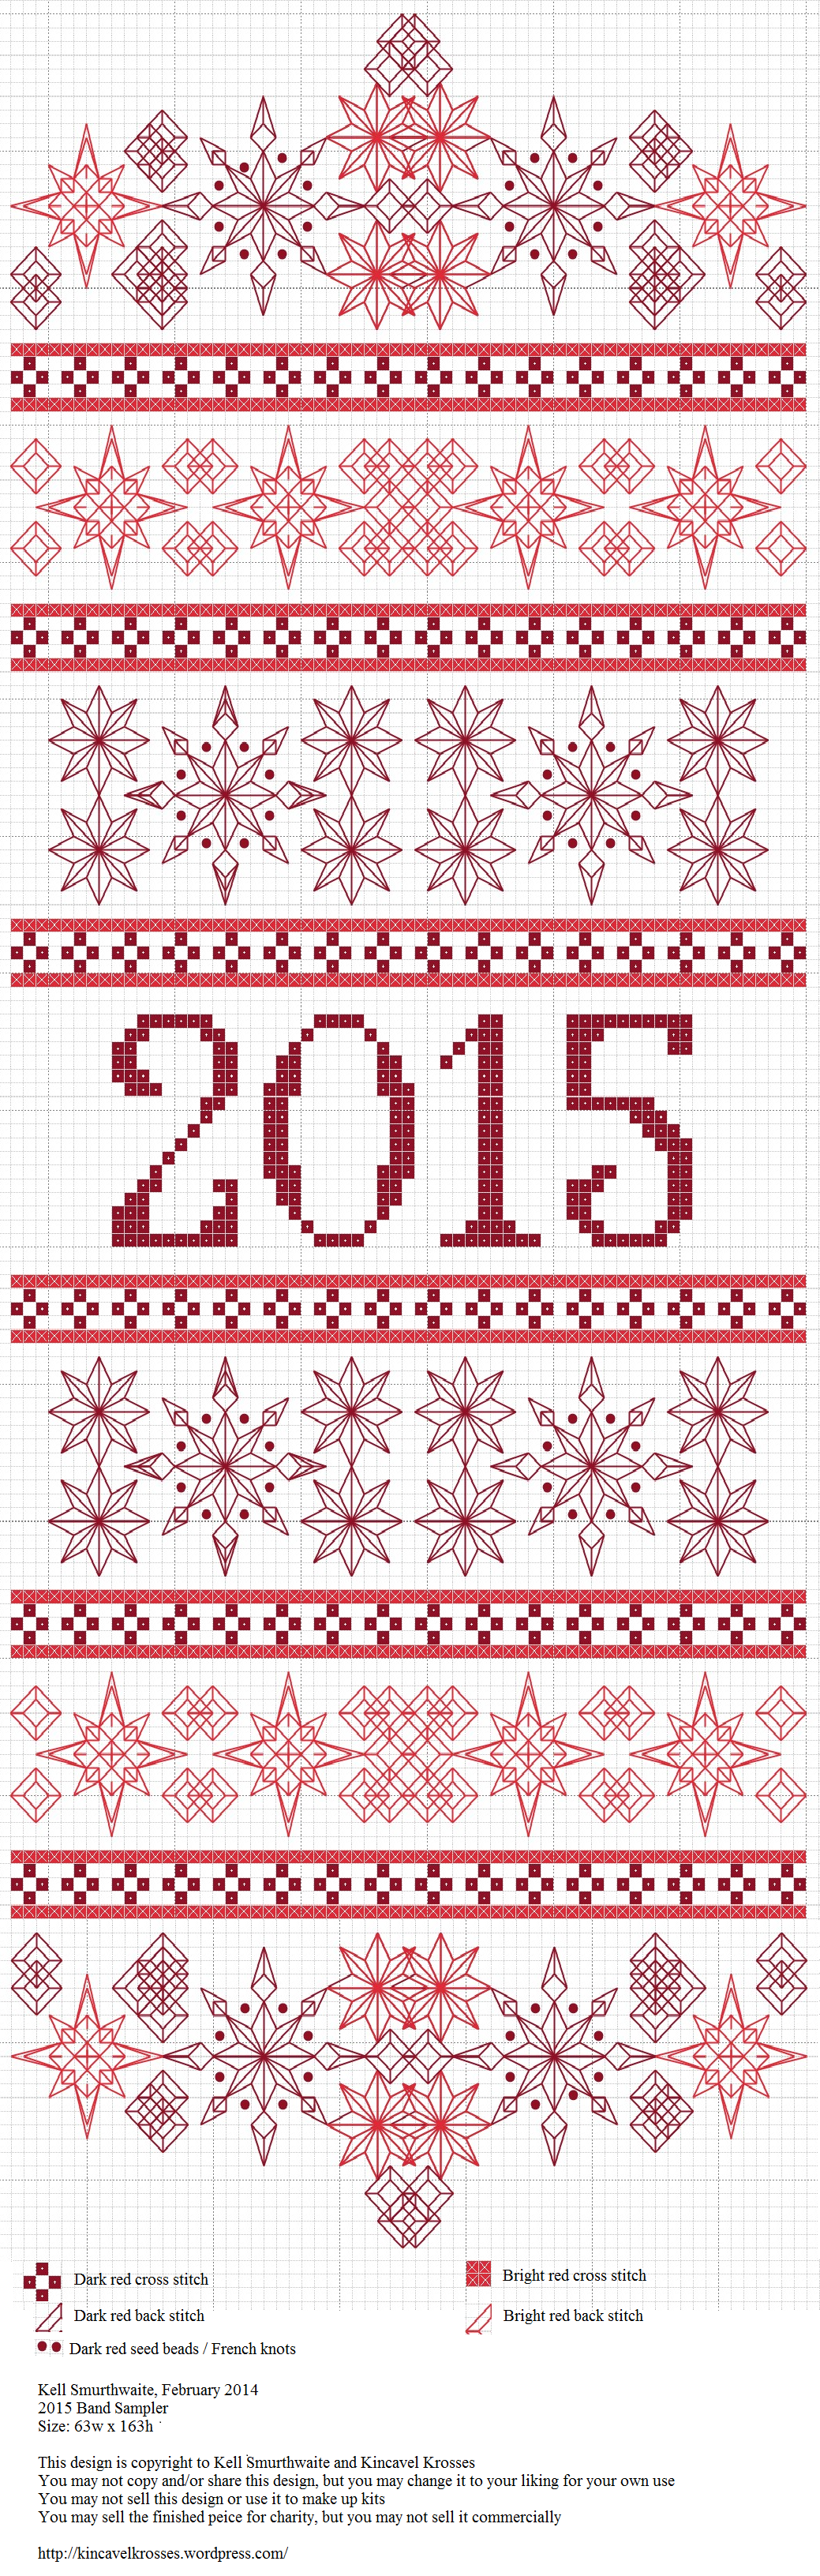 2015 band sampler cross stitch count and stitch blackwork embroidery bankloansurffo Gallery